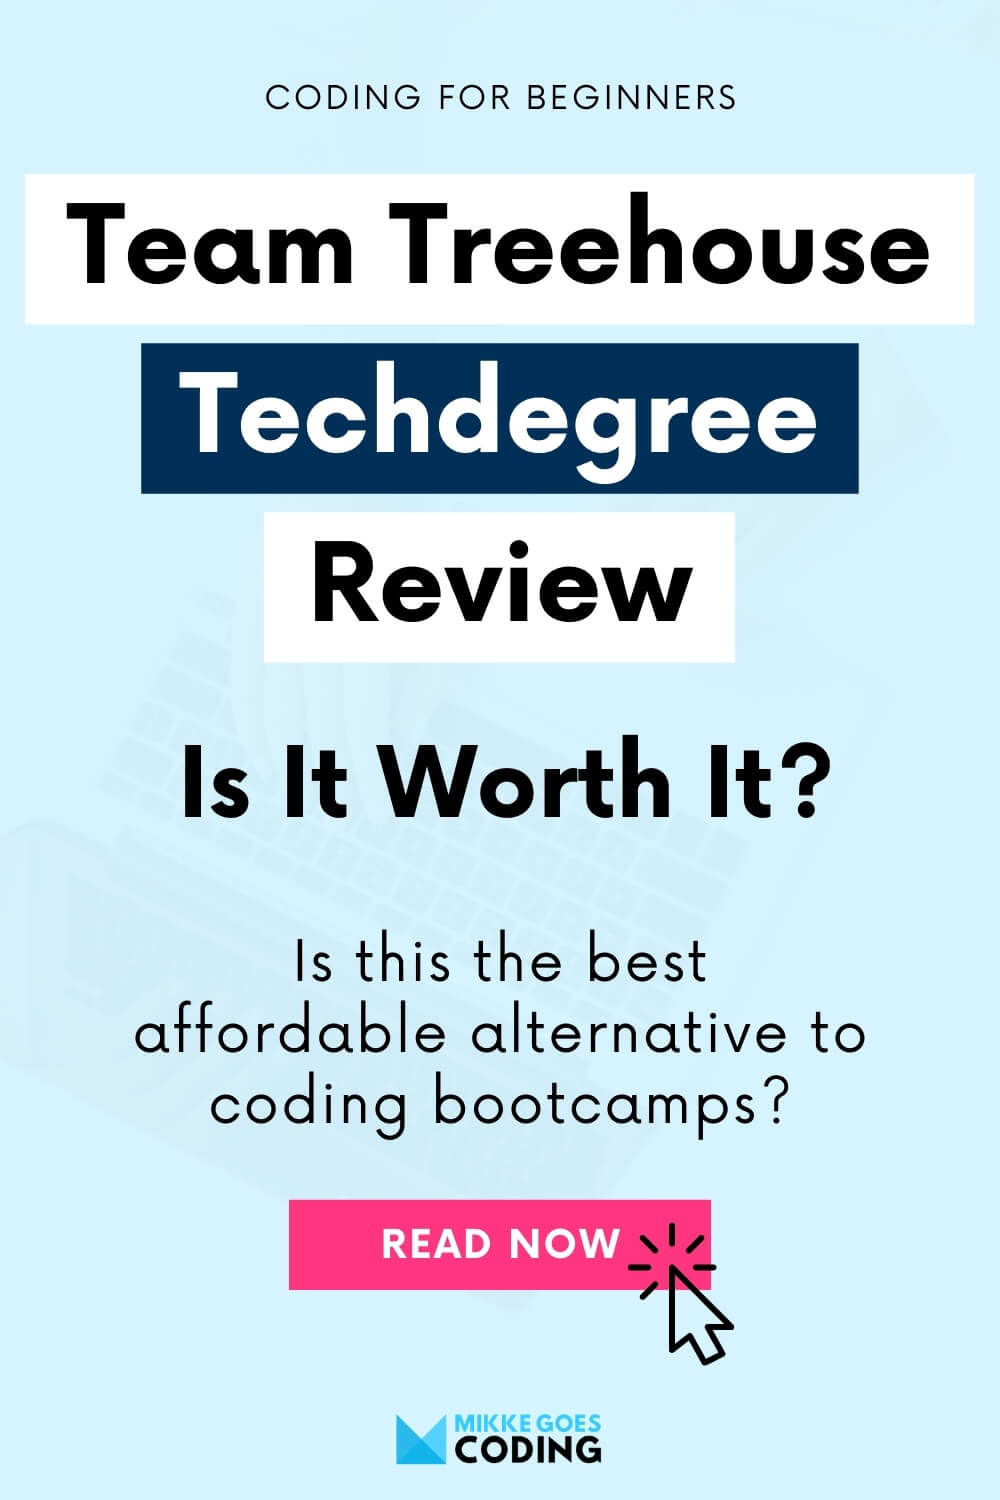 Team Treehouse Techdegree Review - Is It Worth It